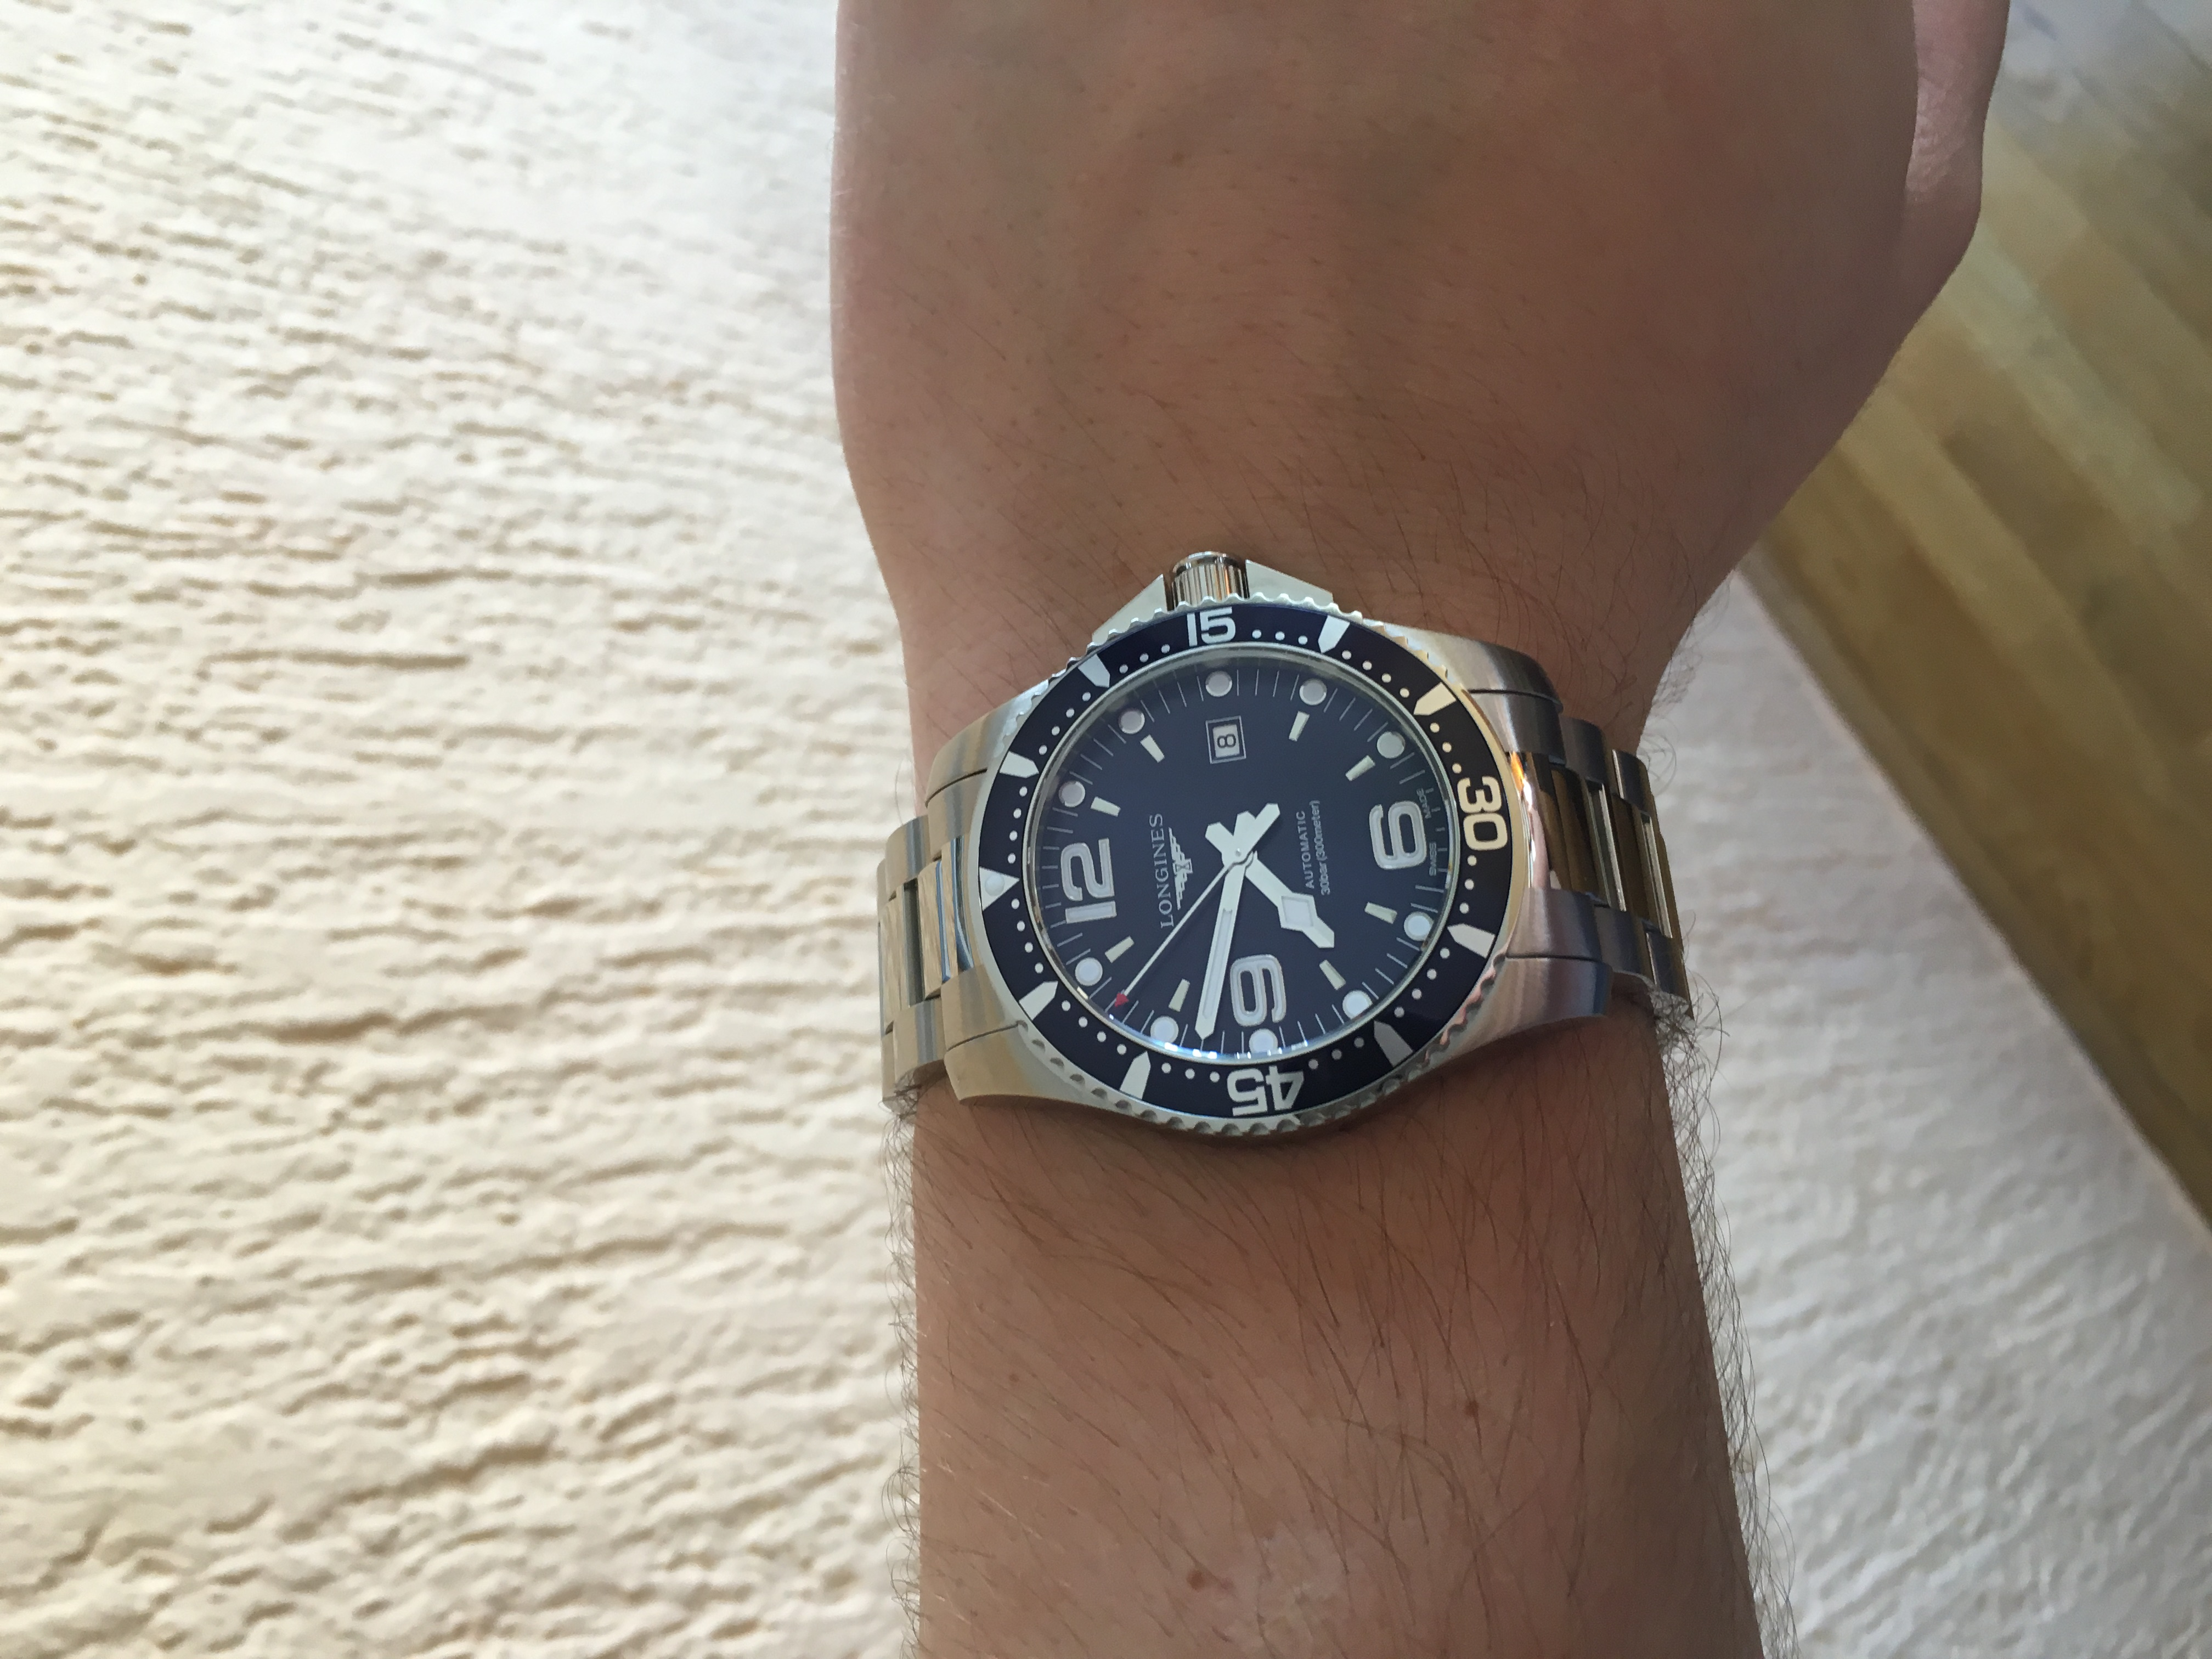 Longines Hydroconquest Automatic >> My new 2017 Longines HydroConquest 44mm automatic